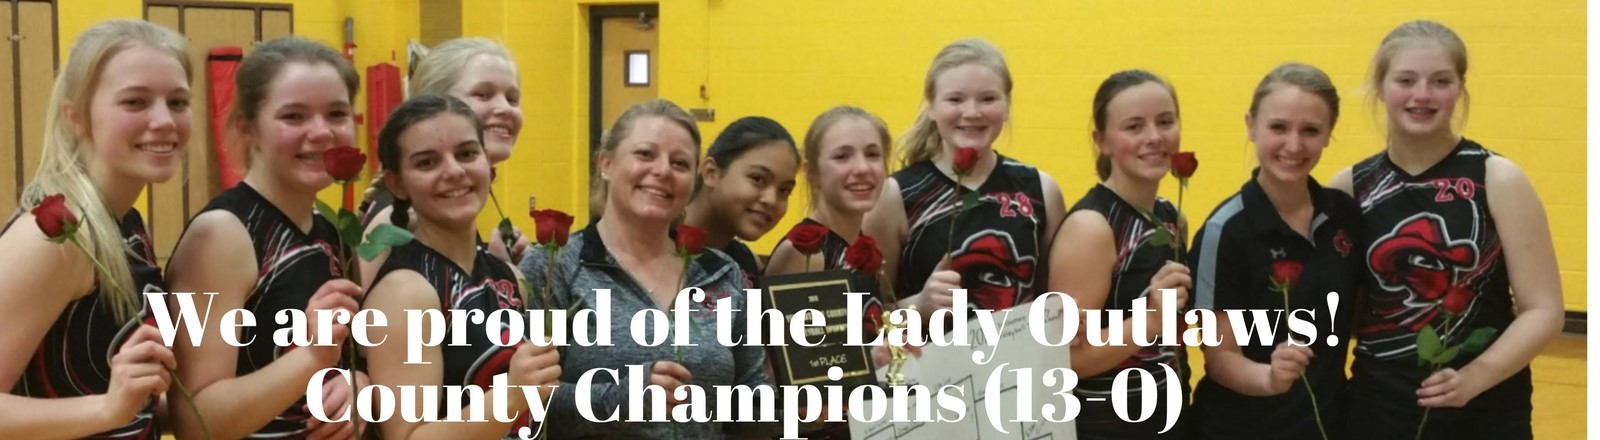 Picture of Lady Outlaws Champions